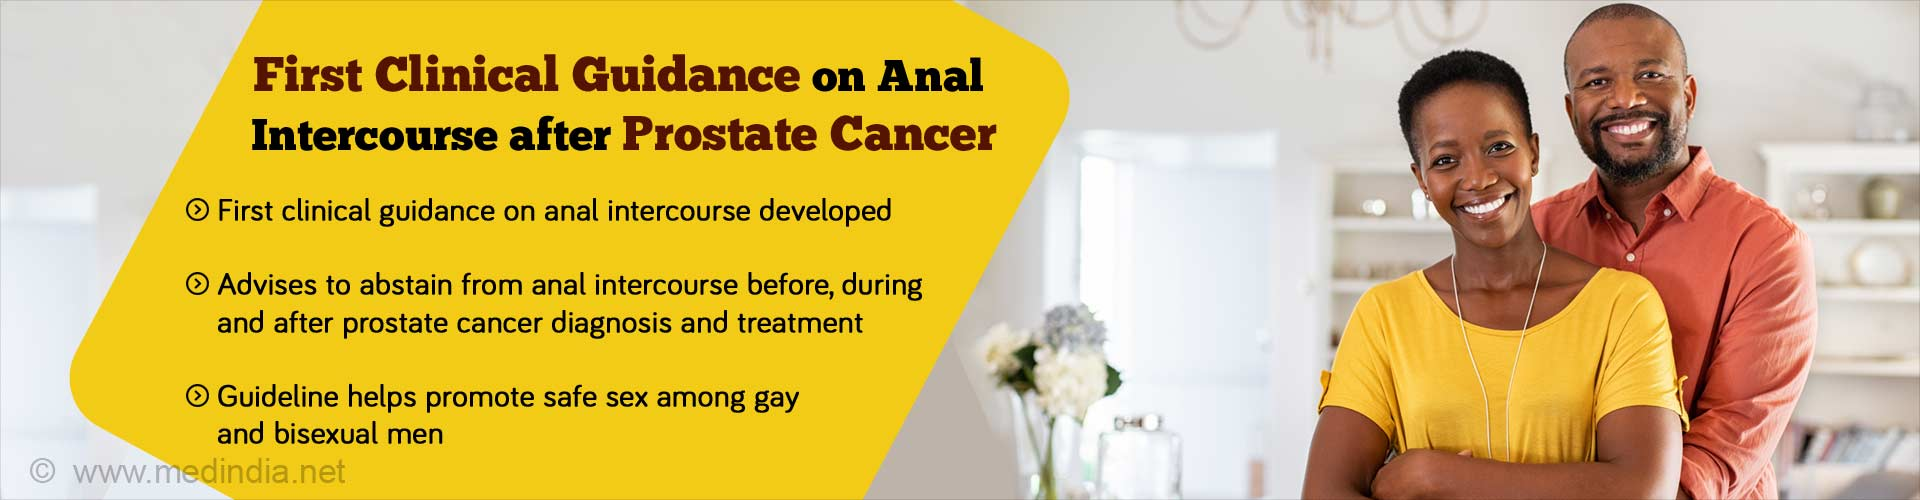 First Clinical Guidance to Address Anal Intercourse After Prostate Cancer